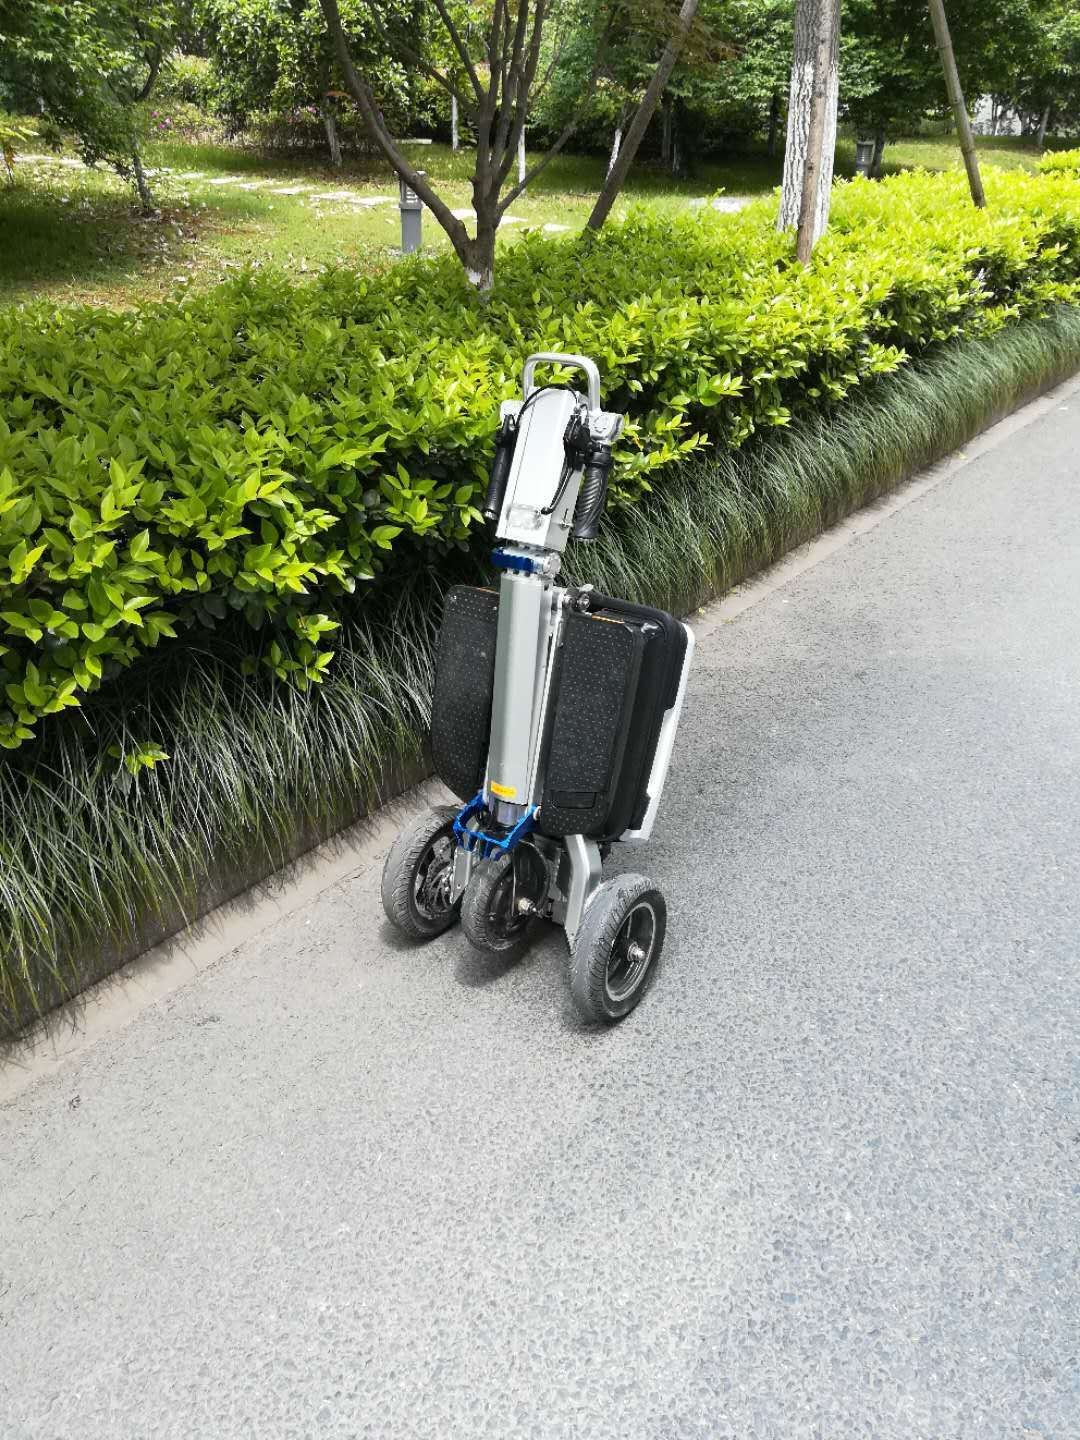 3 Wheel Electric Folding Mobility Scooter Compact Portable